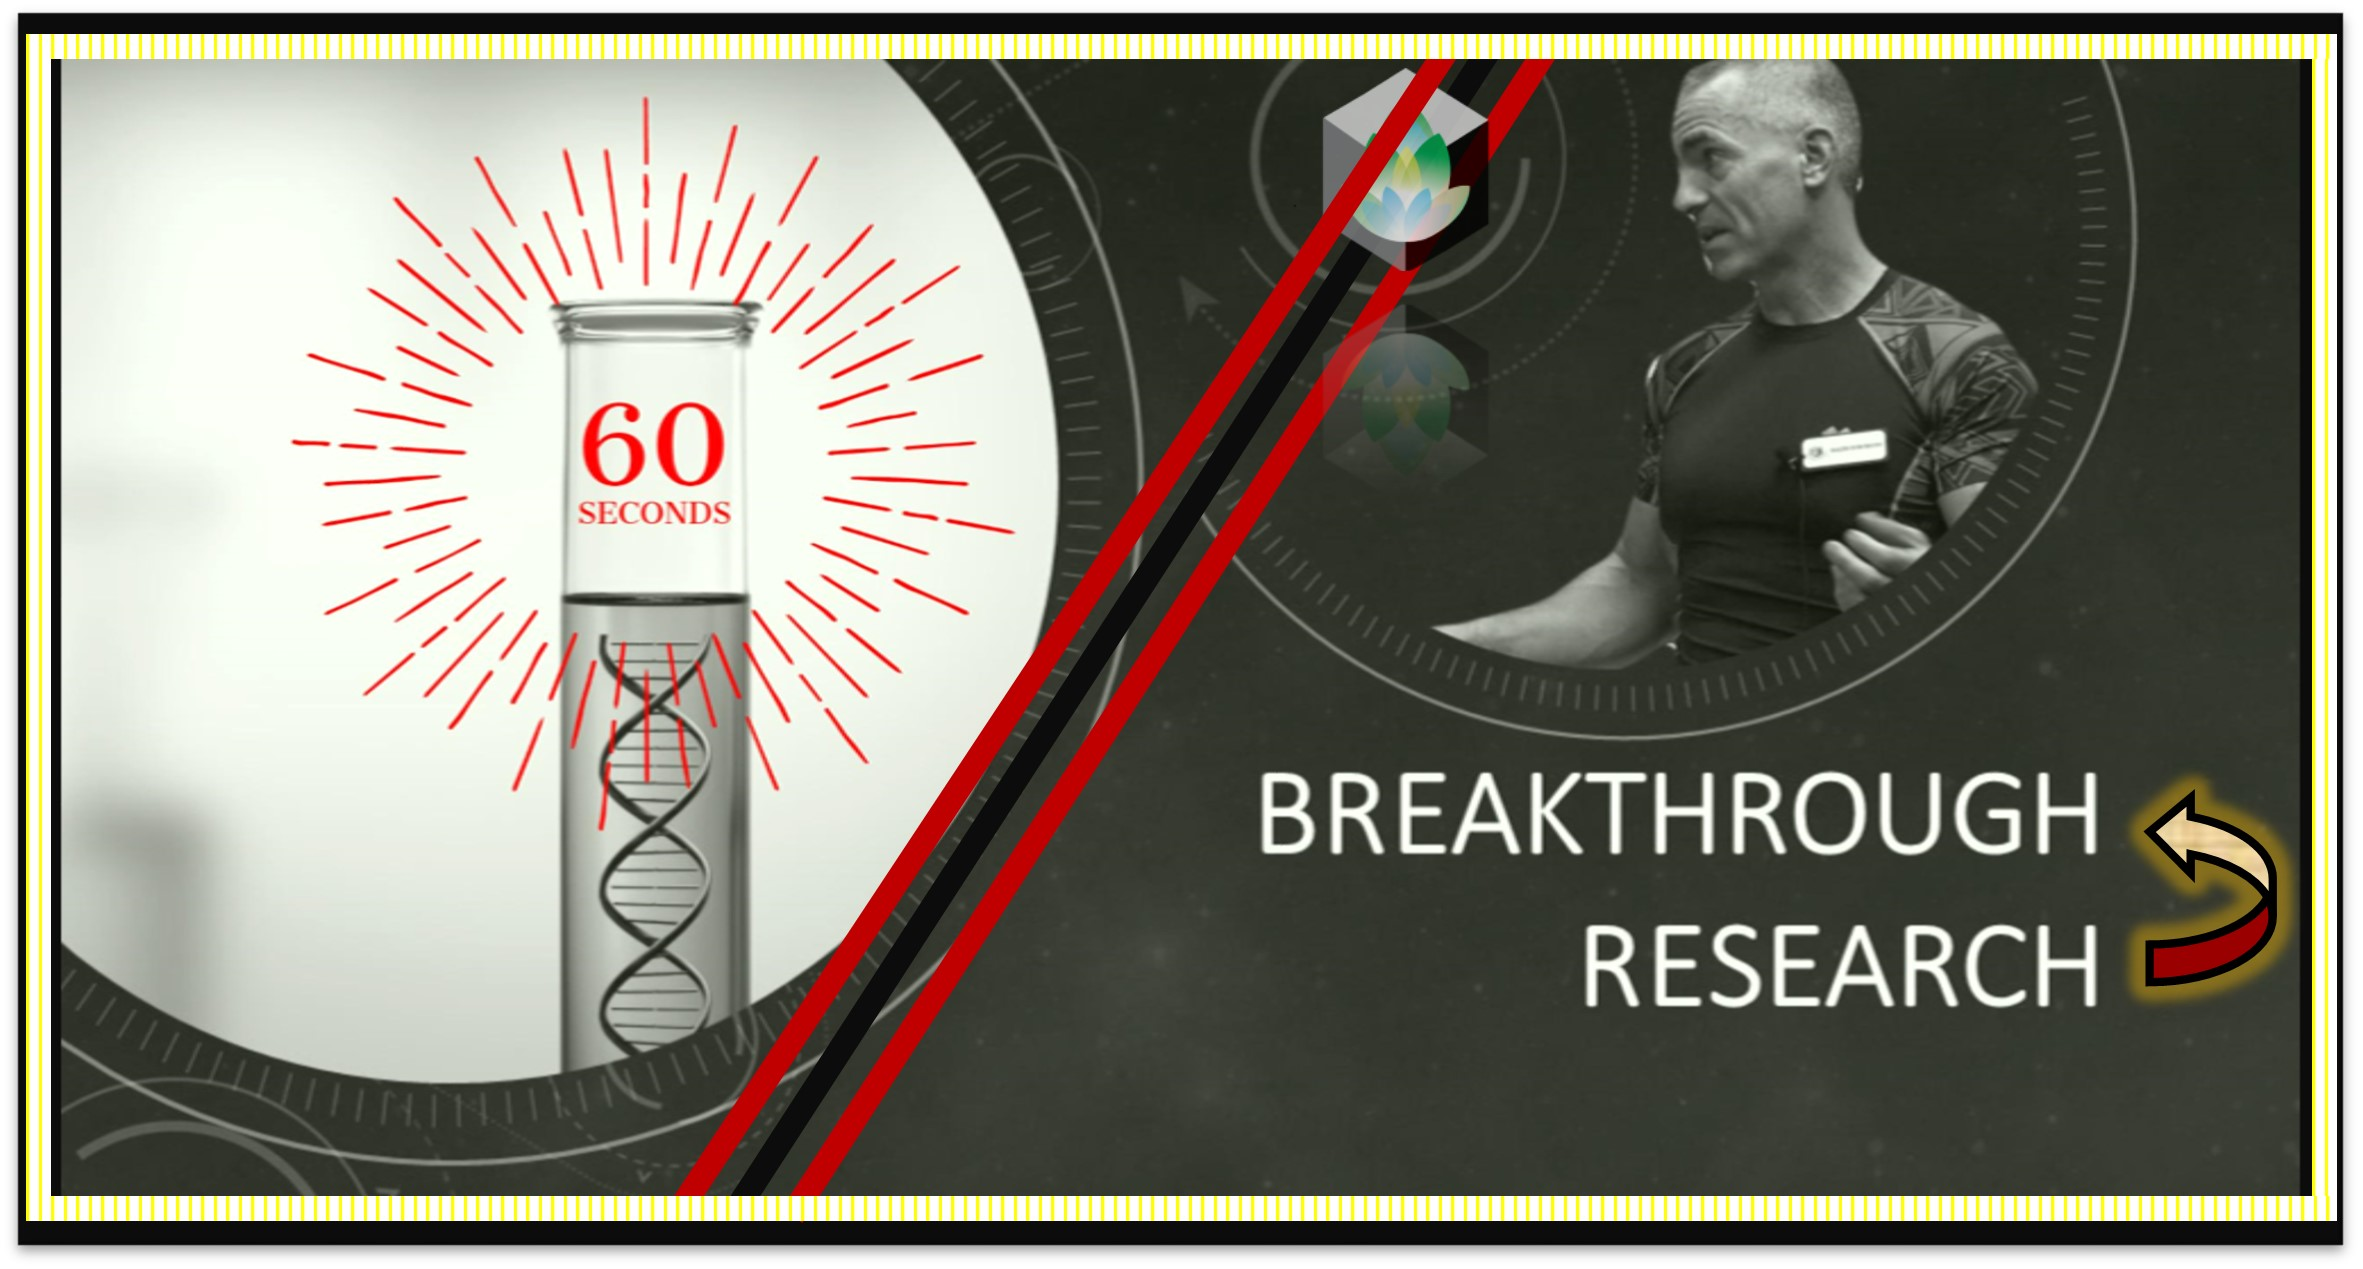 Breakthrough Research 06 MAR 2017